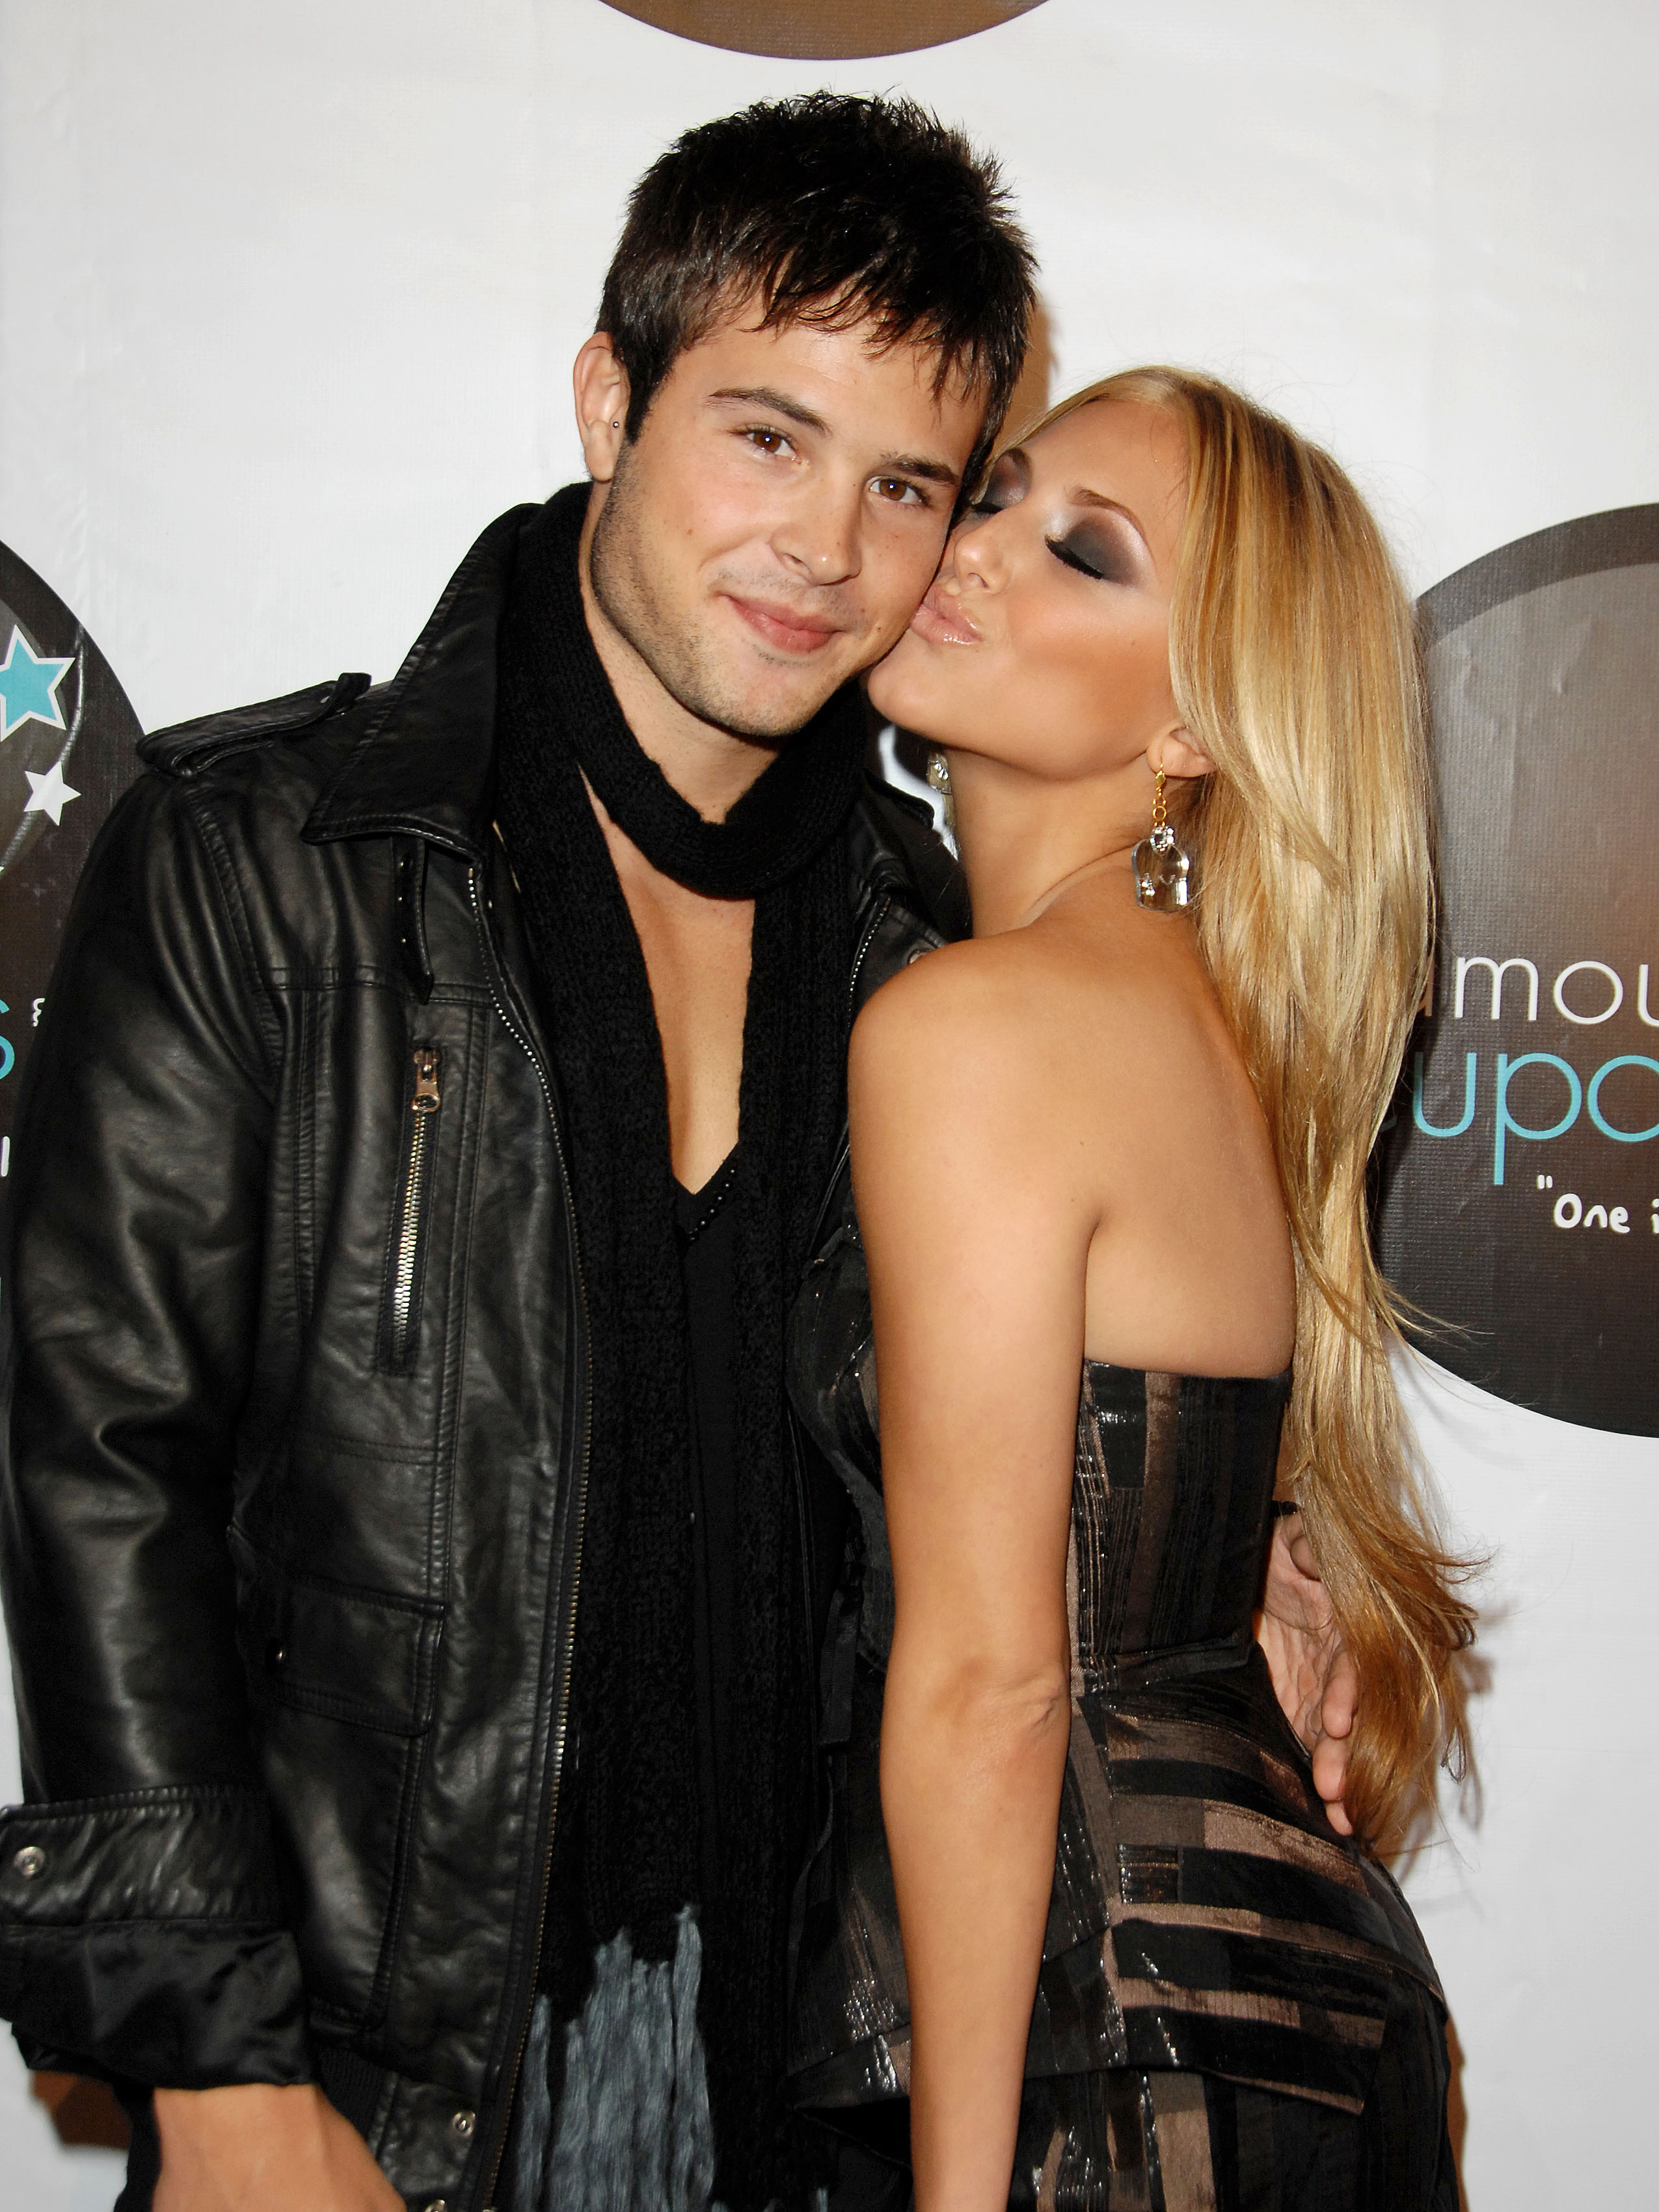 Who is dating cassie scerbo